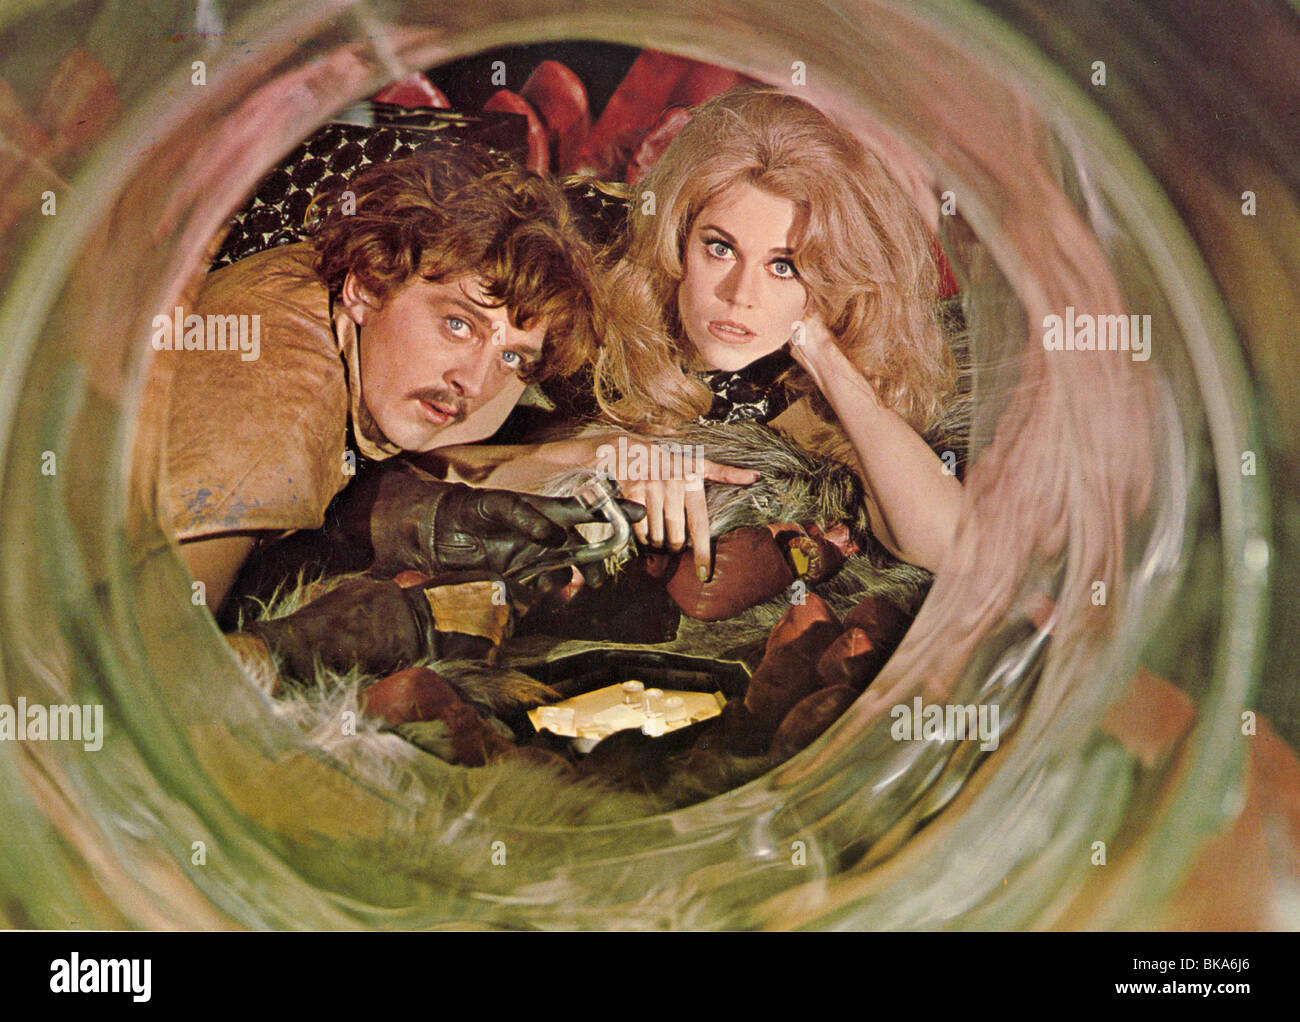 BARBARELLA (1967) DAVID HEMMINGS, DILDANO, JANE FONDA, BARBARELLA BRB 008FOH - Stock Image